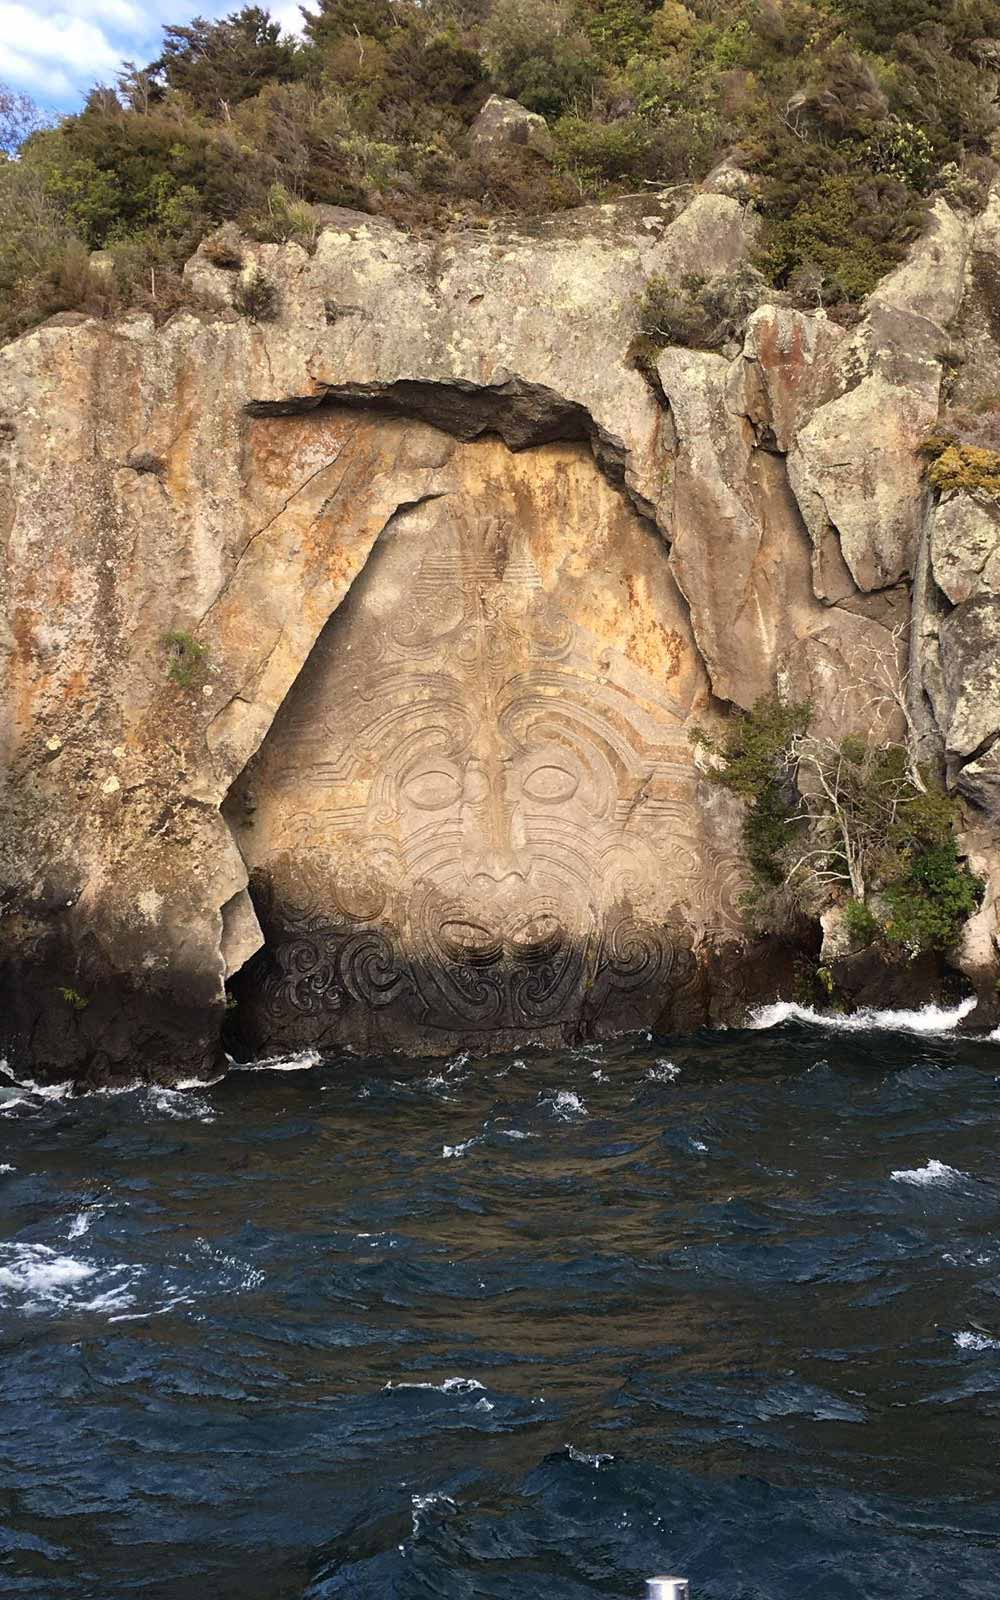 Maori Rock Carvings am Lake Taupo, Neuseeland